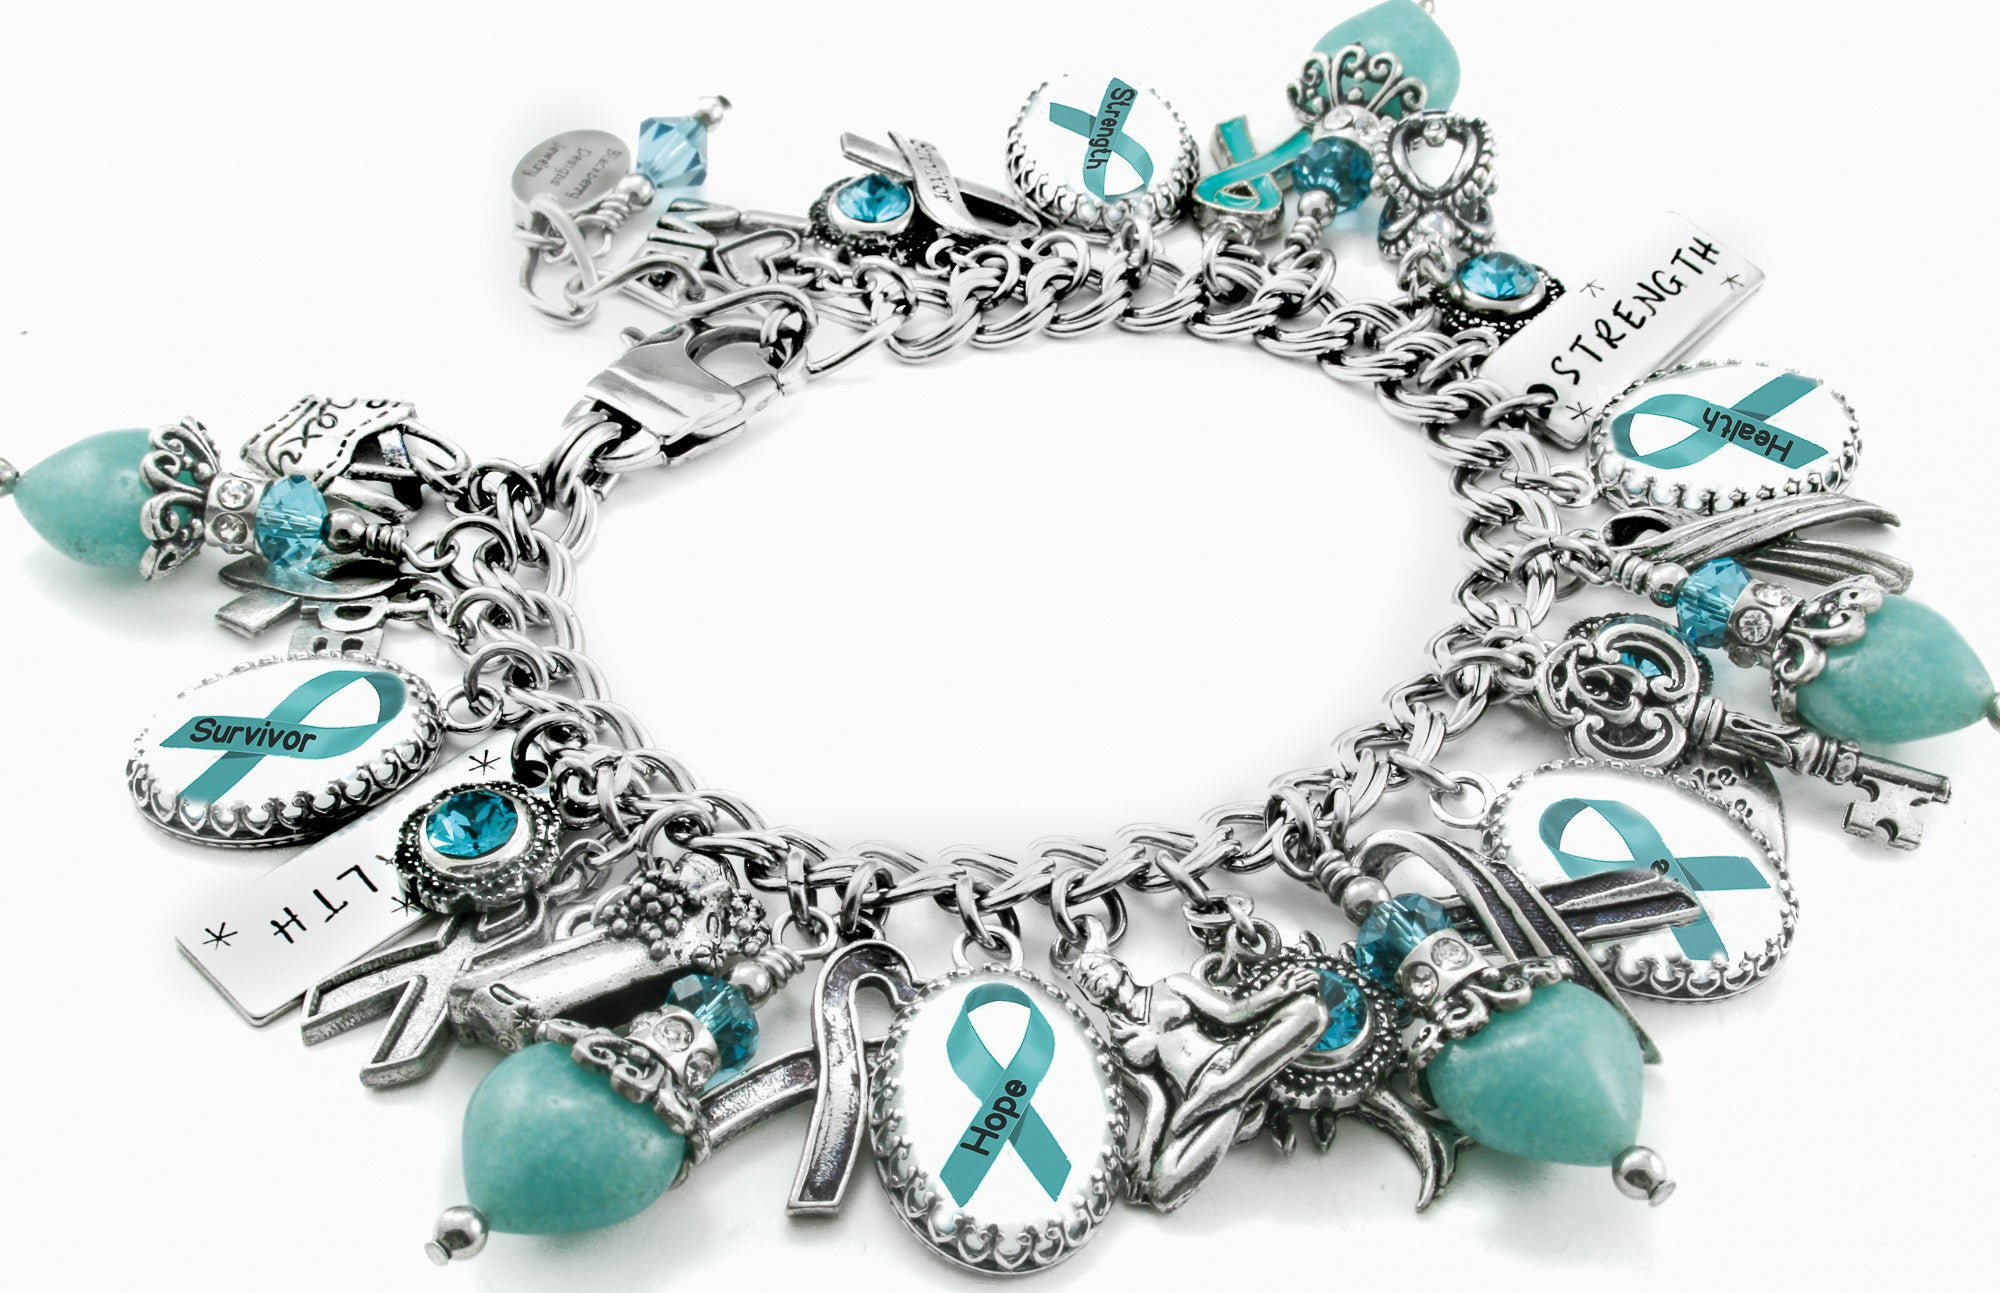 Handcrafted Ovarian Cancer Awareness Charm Bracelet With Teal Ribbons Blackberry Designs Jewelry